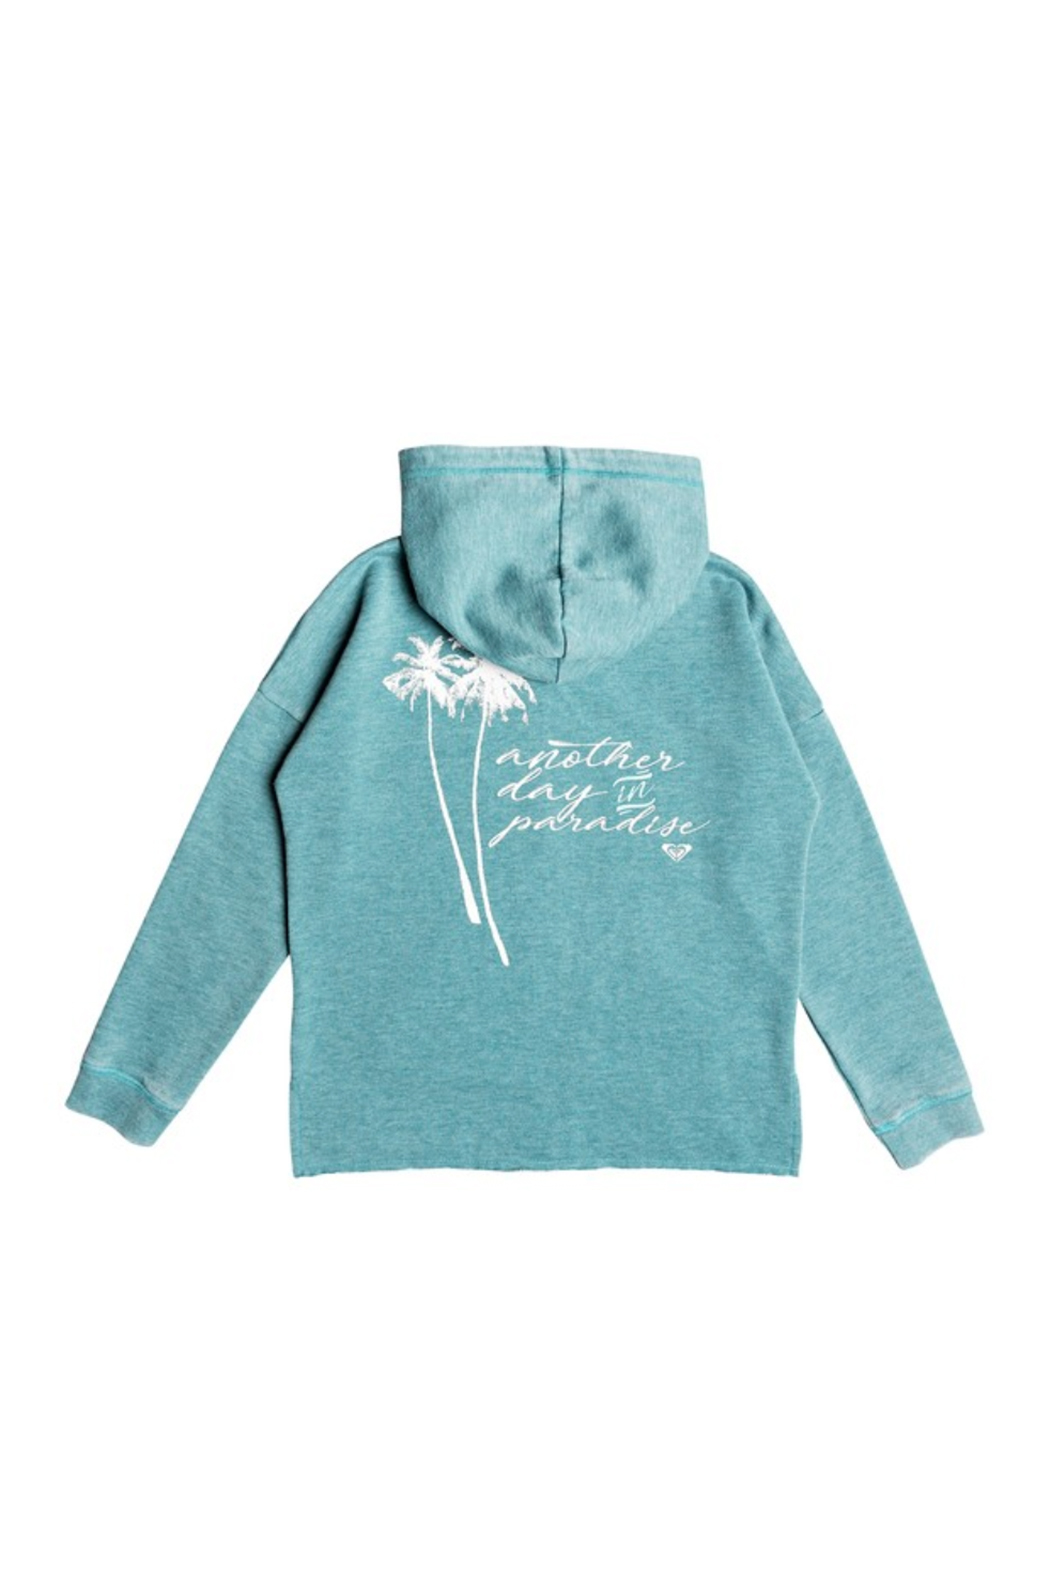 Roxy In The Moment Zip-Up Hoodie - Front Full Image